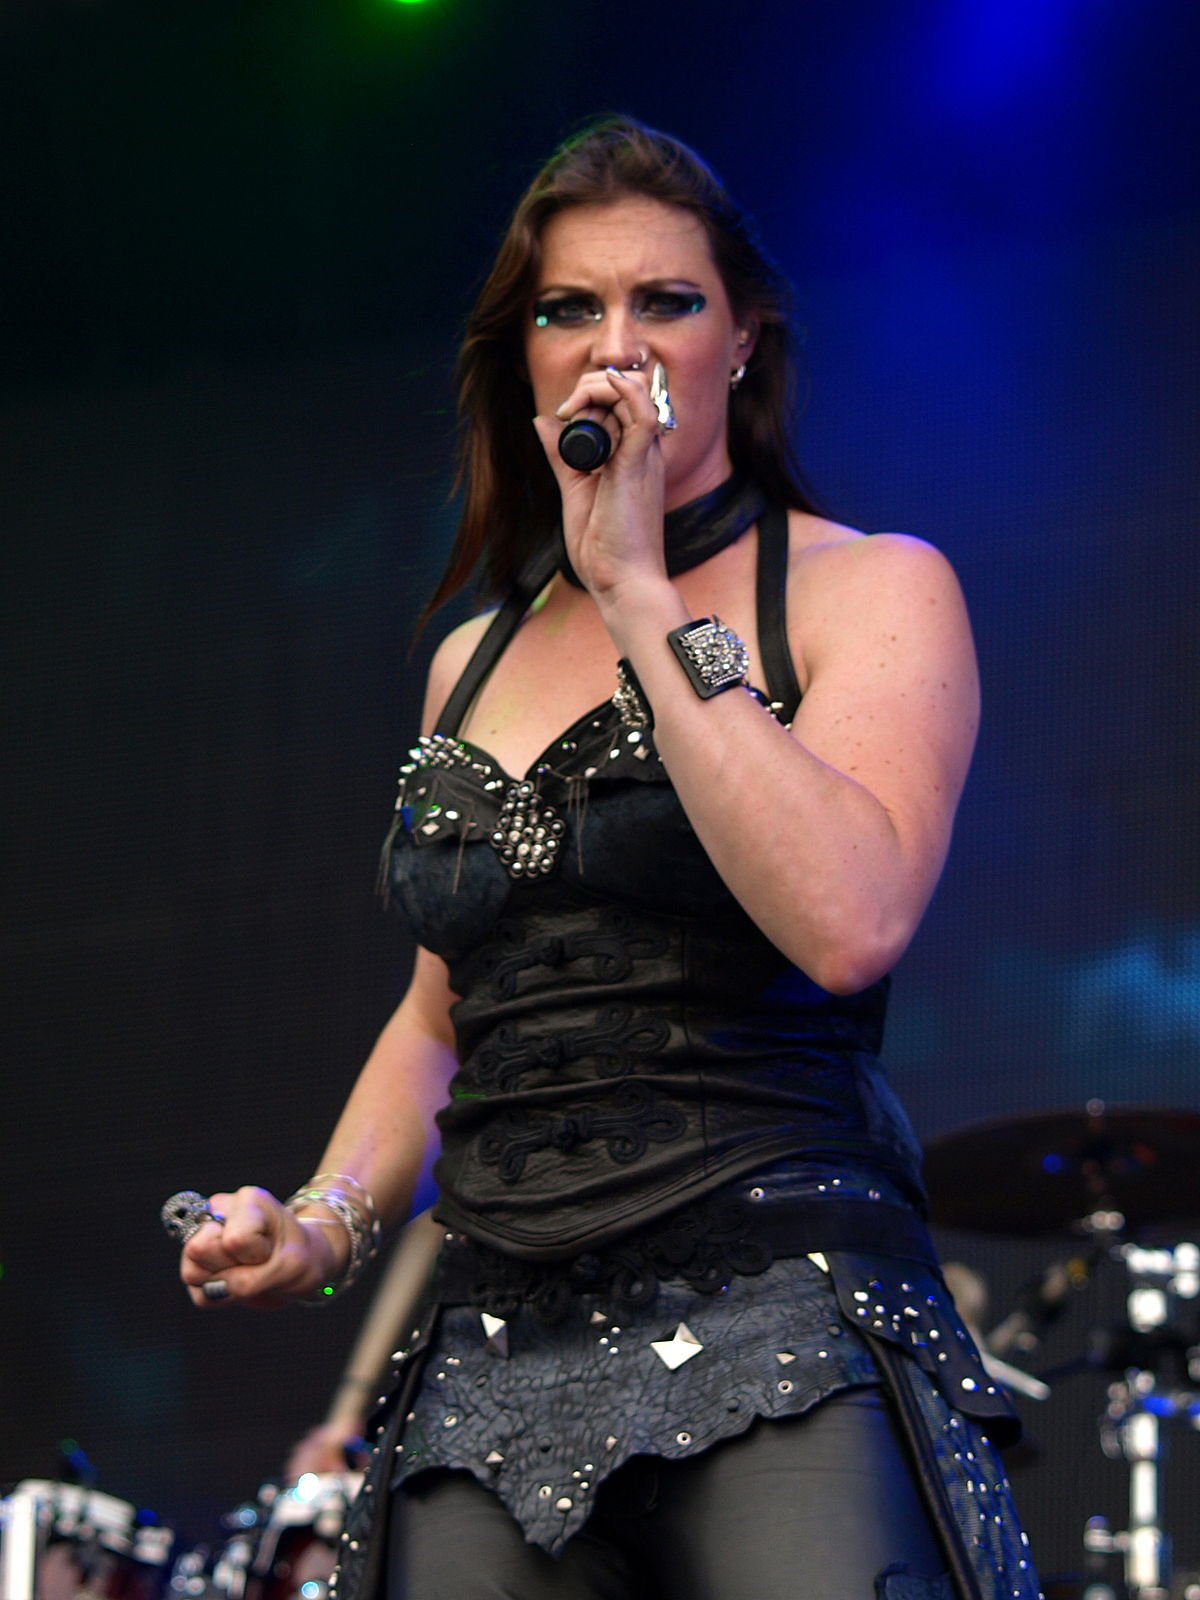 Floor jansen wikip dia for Floor wikipedia